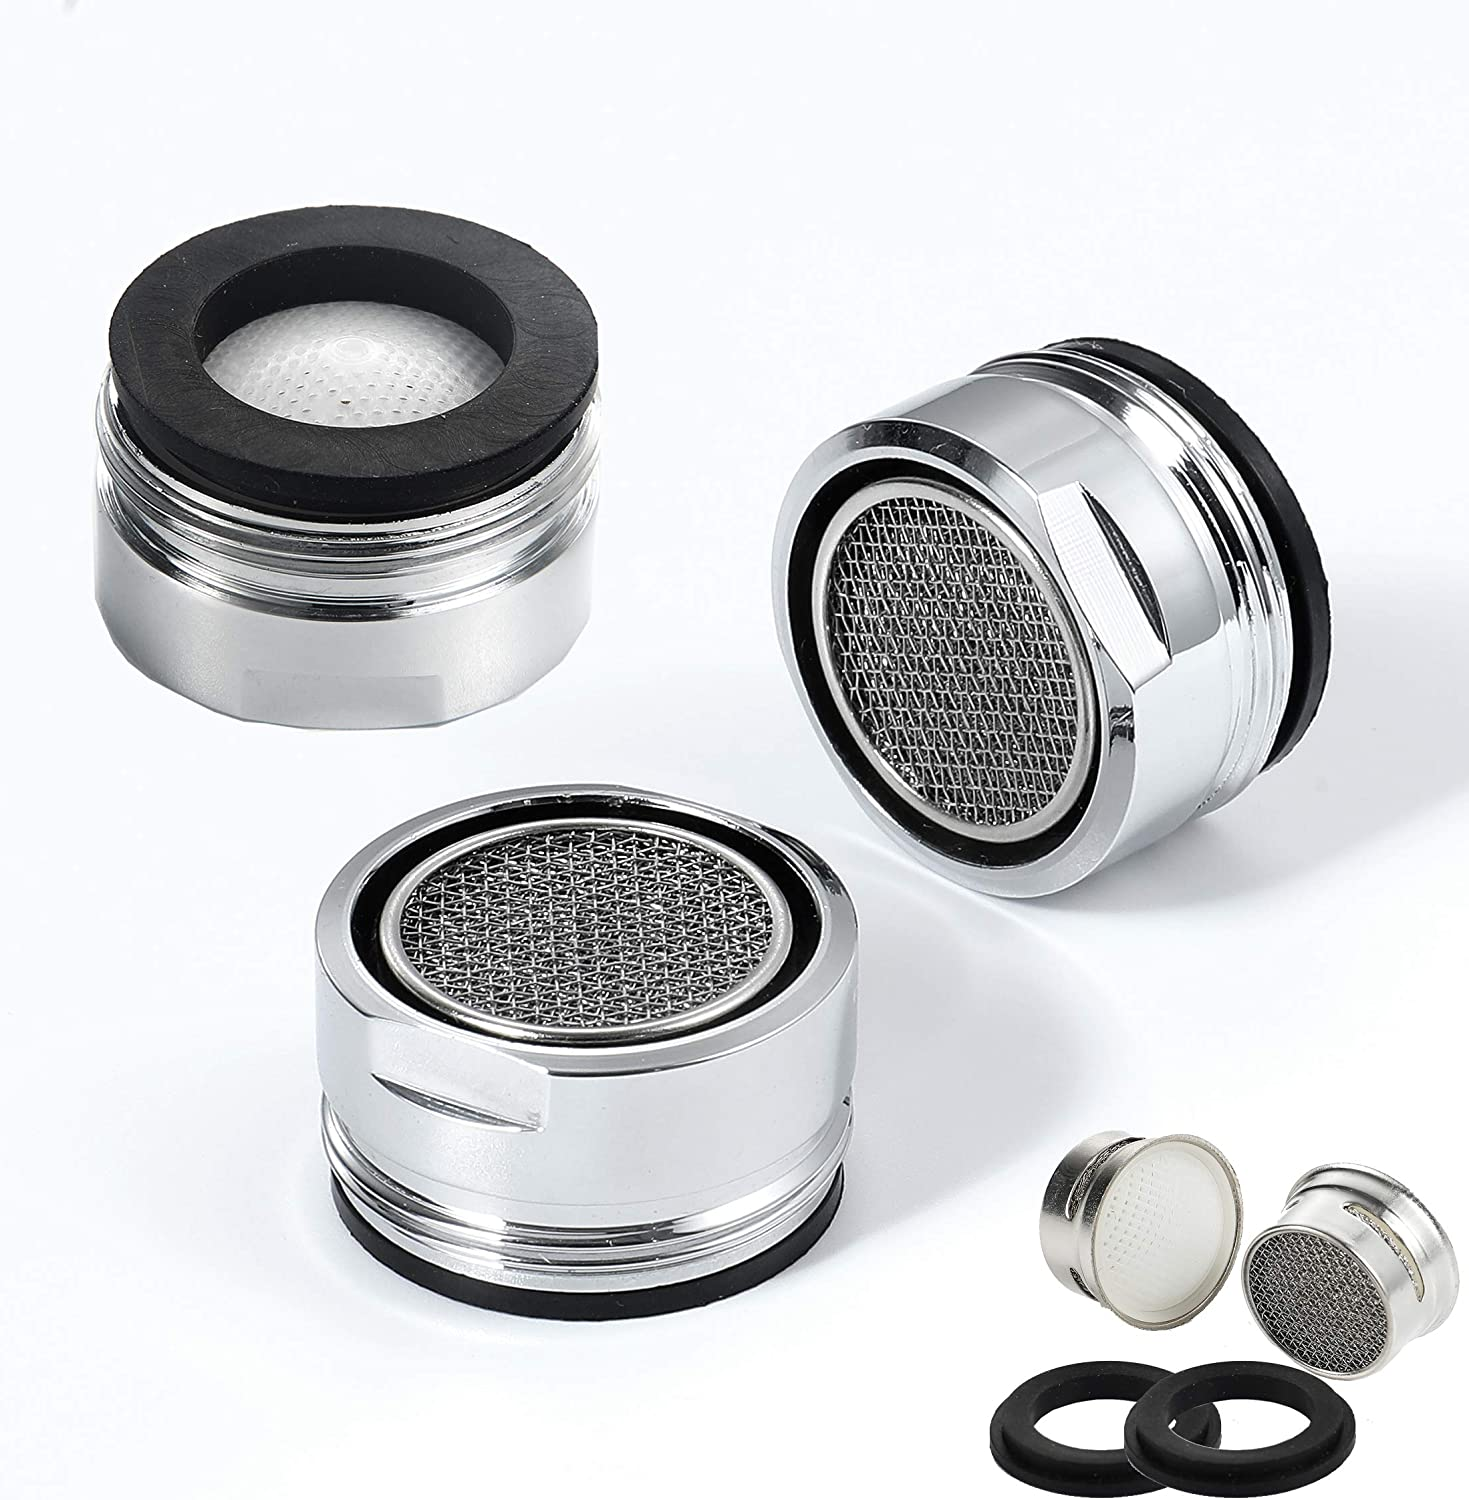 Kitchen Faucet Aerator Flow Retrictor Insert Faucet Aerators With Brass Shell Replacement Parts For Spout 3 Pack Standard Size Ar80 3p Amazon Com